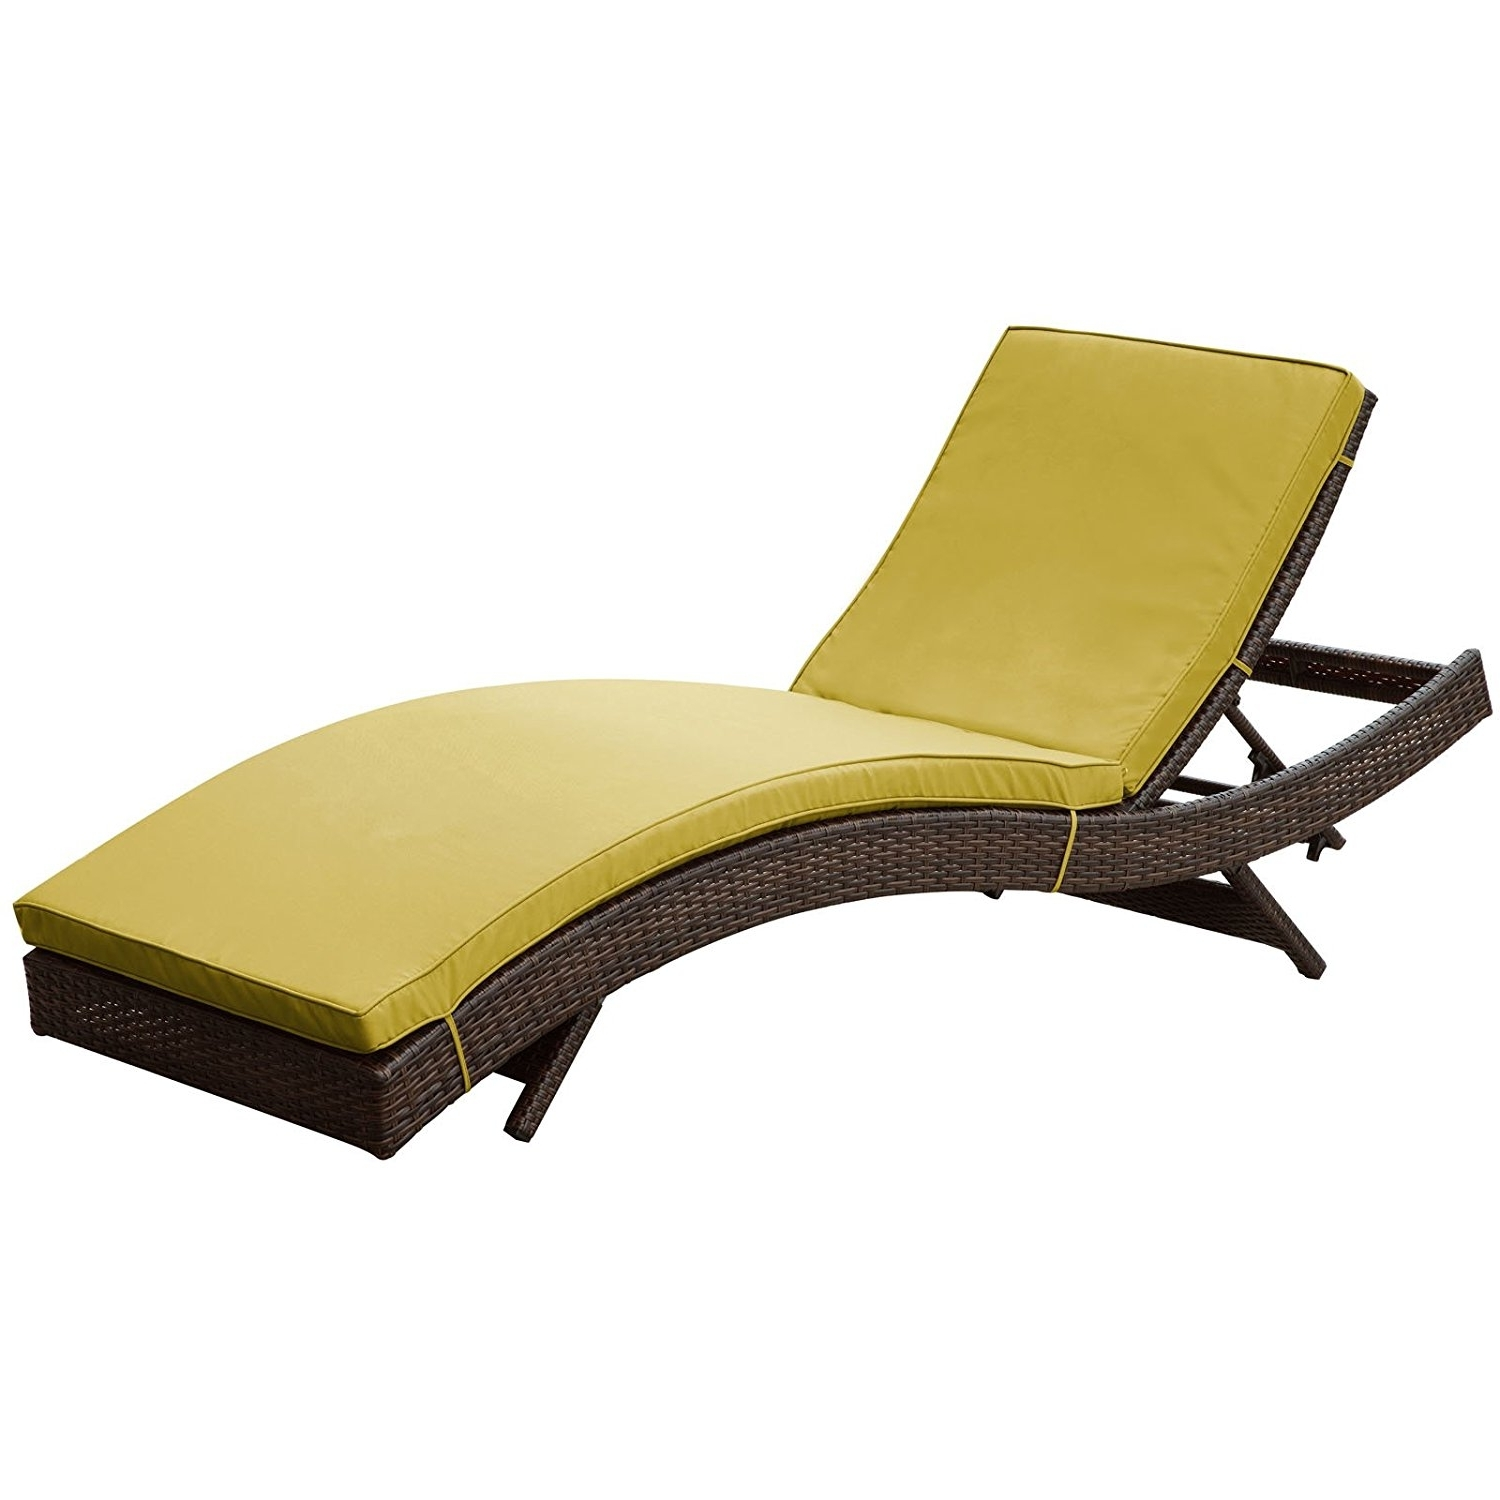 Popular Amazon: Modway Peer Outdoor Wicker Chaise Lounge Chair With Inside Rattan Chaise Lounges (View 14 of 15)